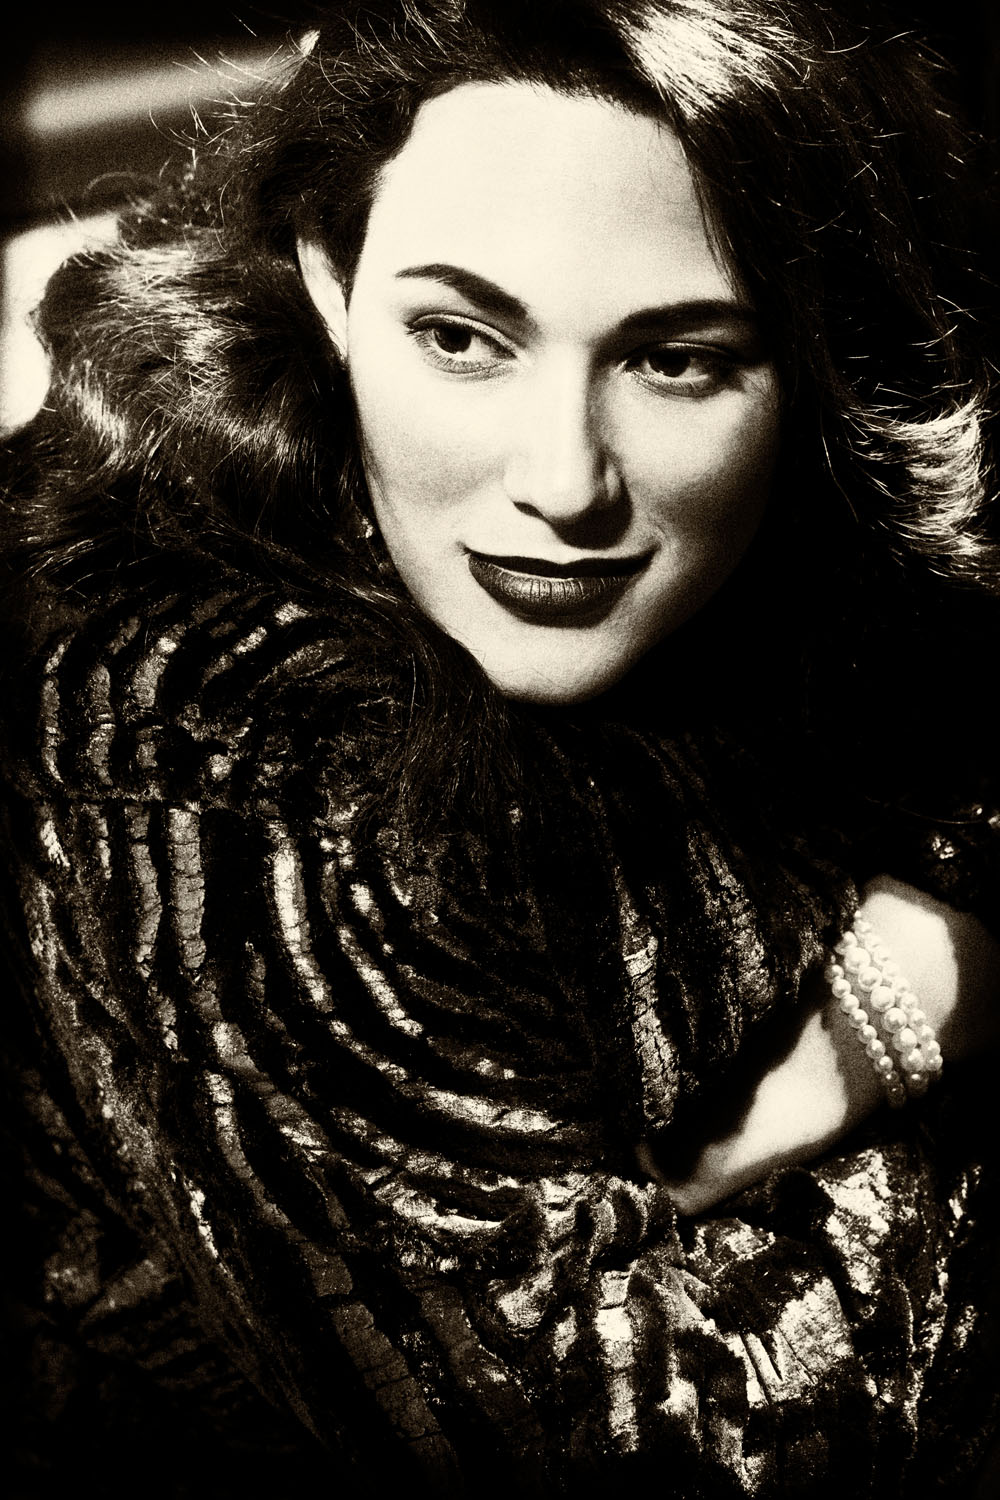 Naomi 1930s with fur_BW.jpg